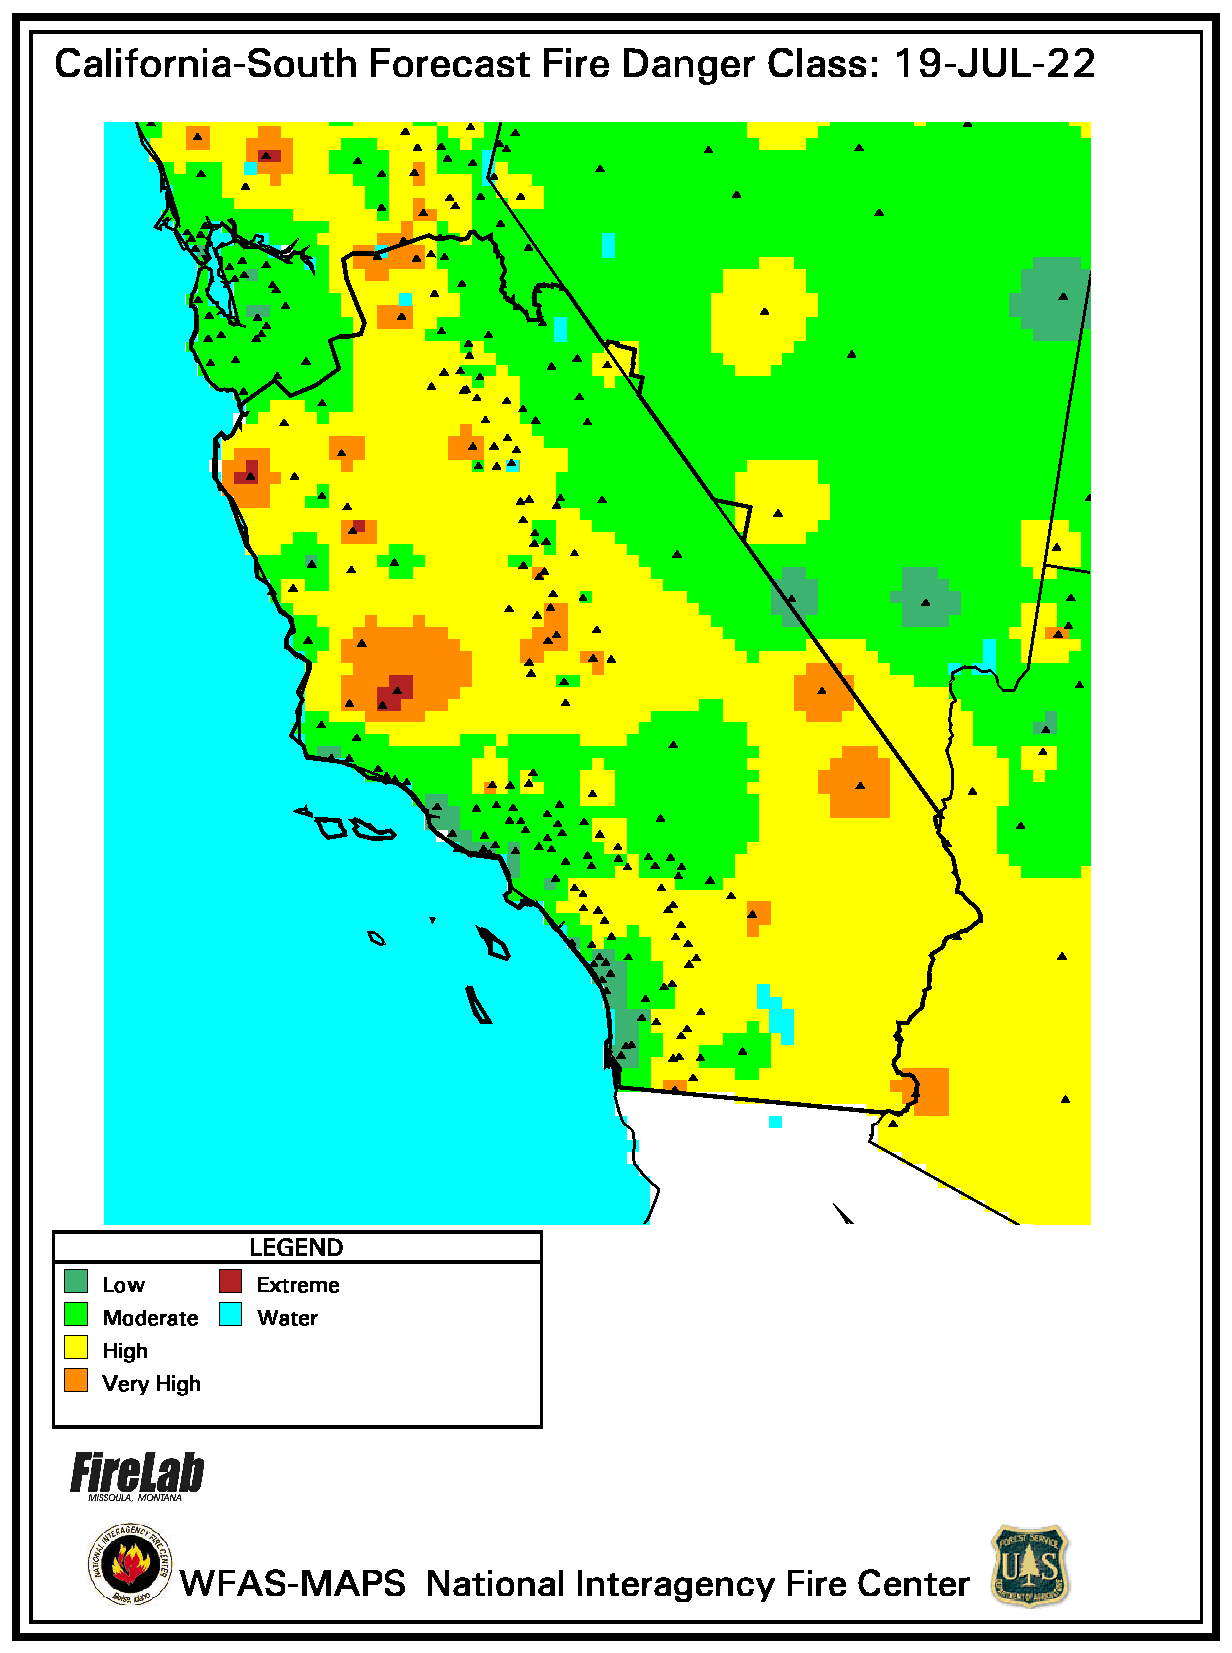 Southern California Fire Danger Forecast